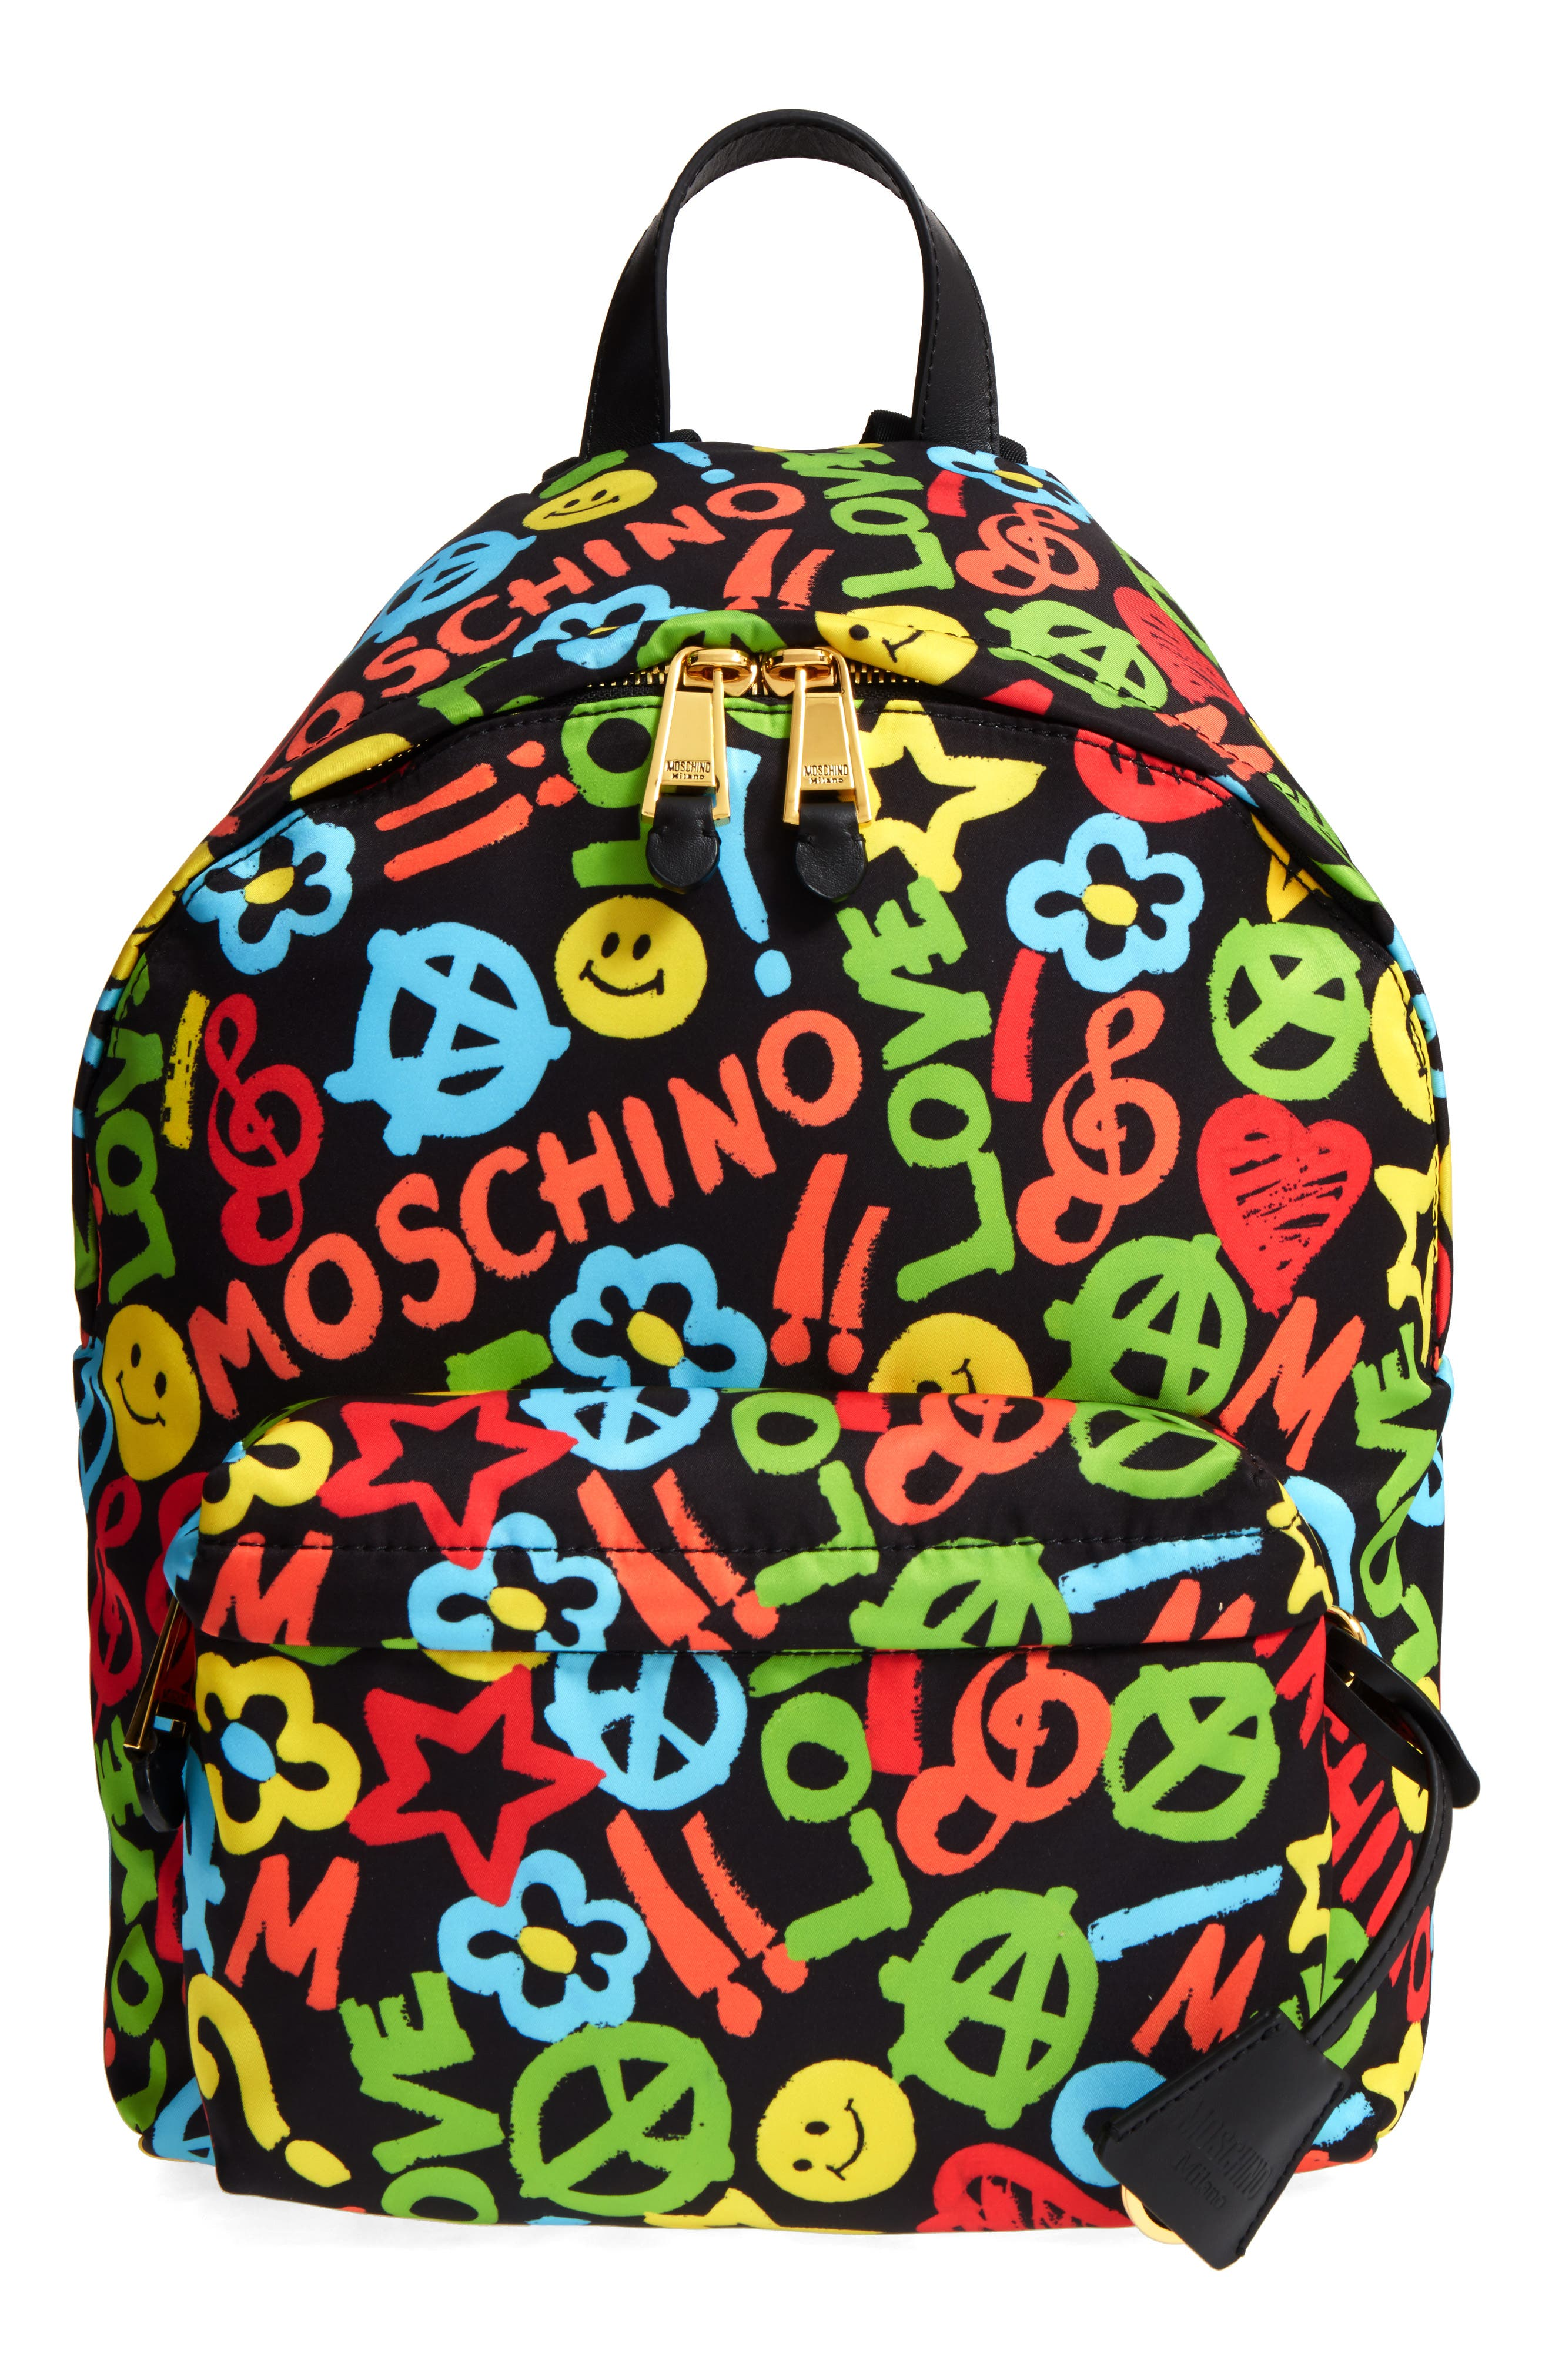 Alternate Image 1 Selected - Moschino Archive Print Tactel® Nylon Backpack